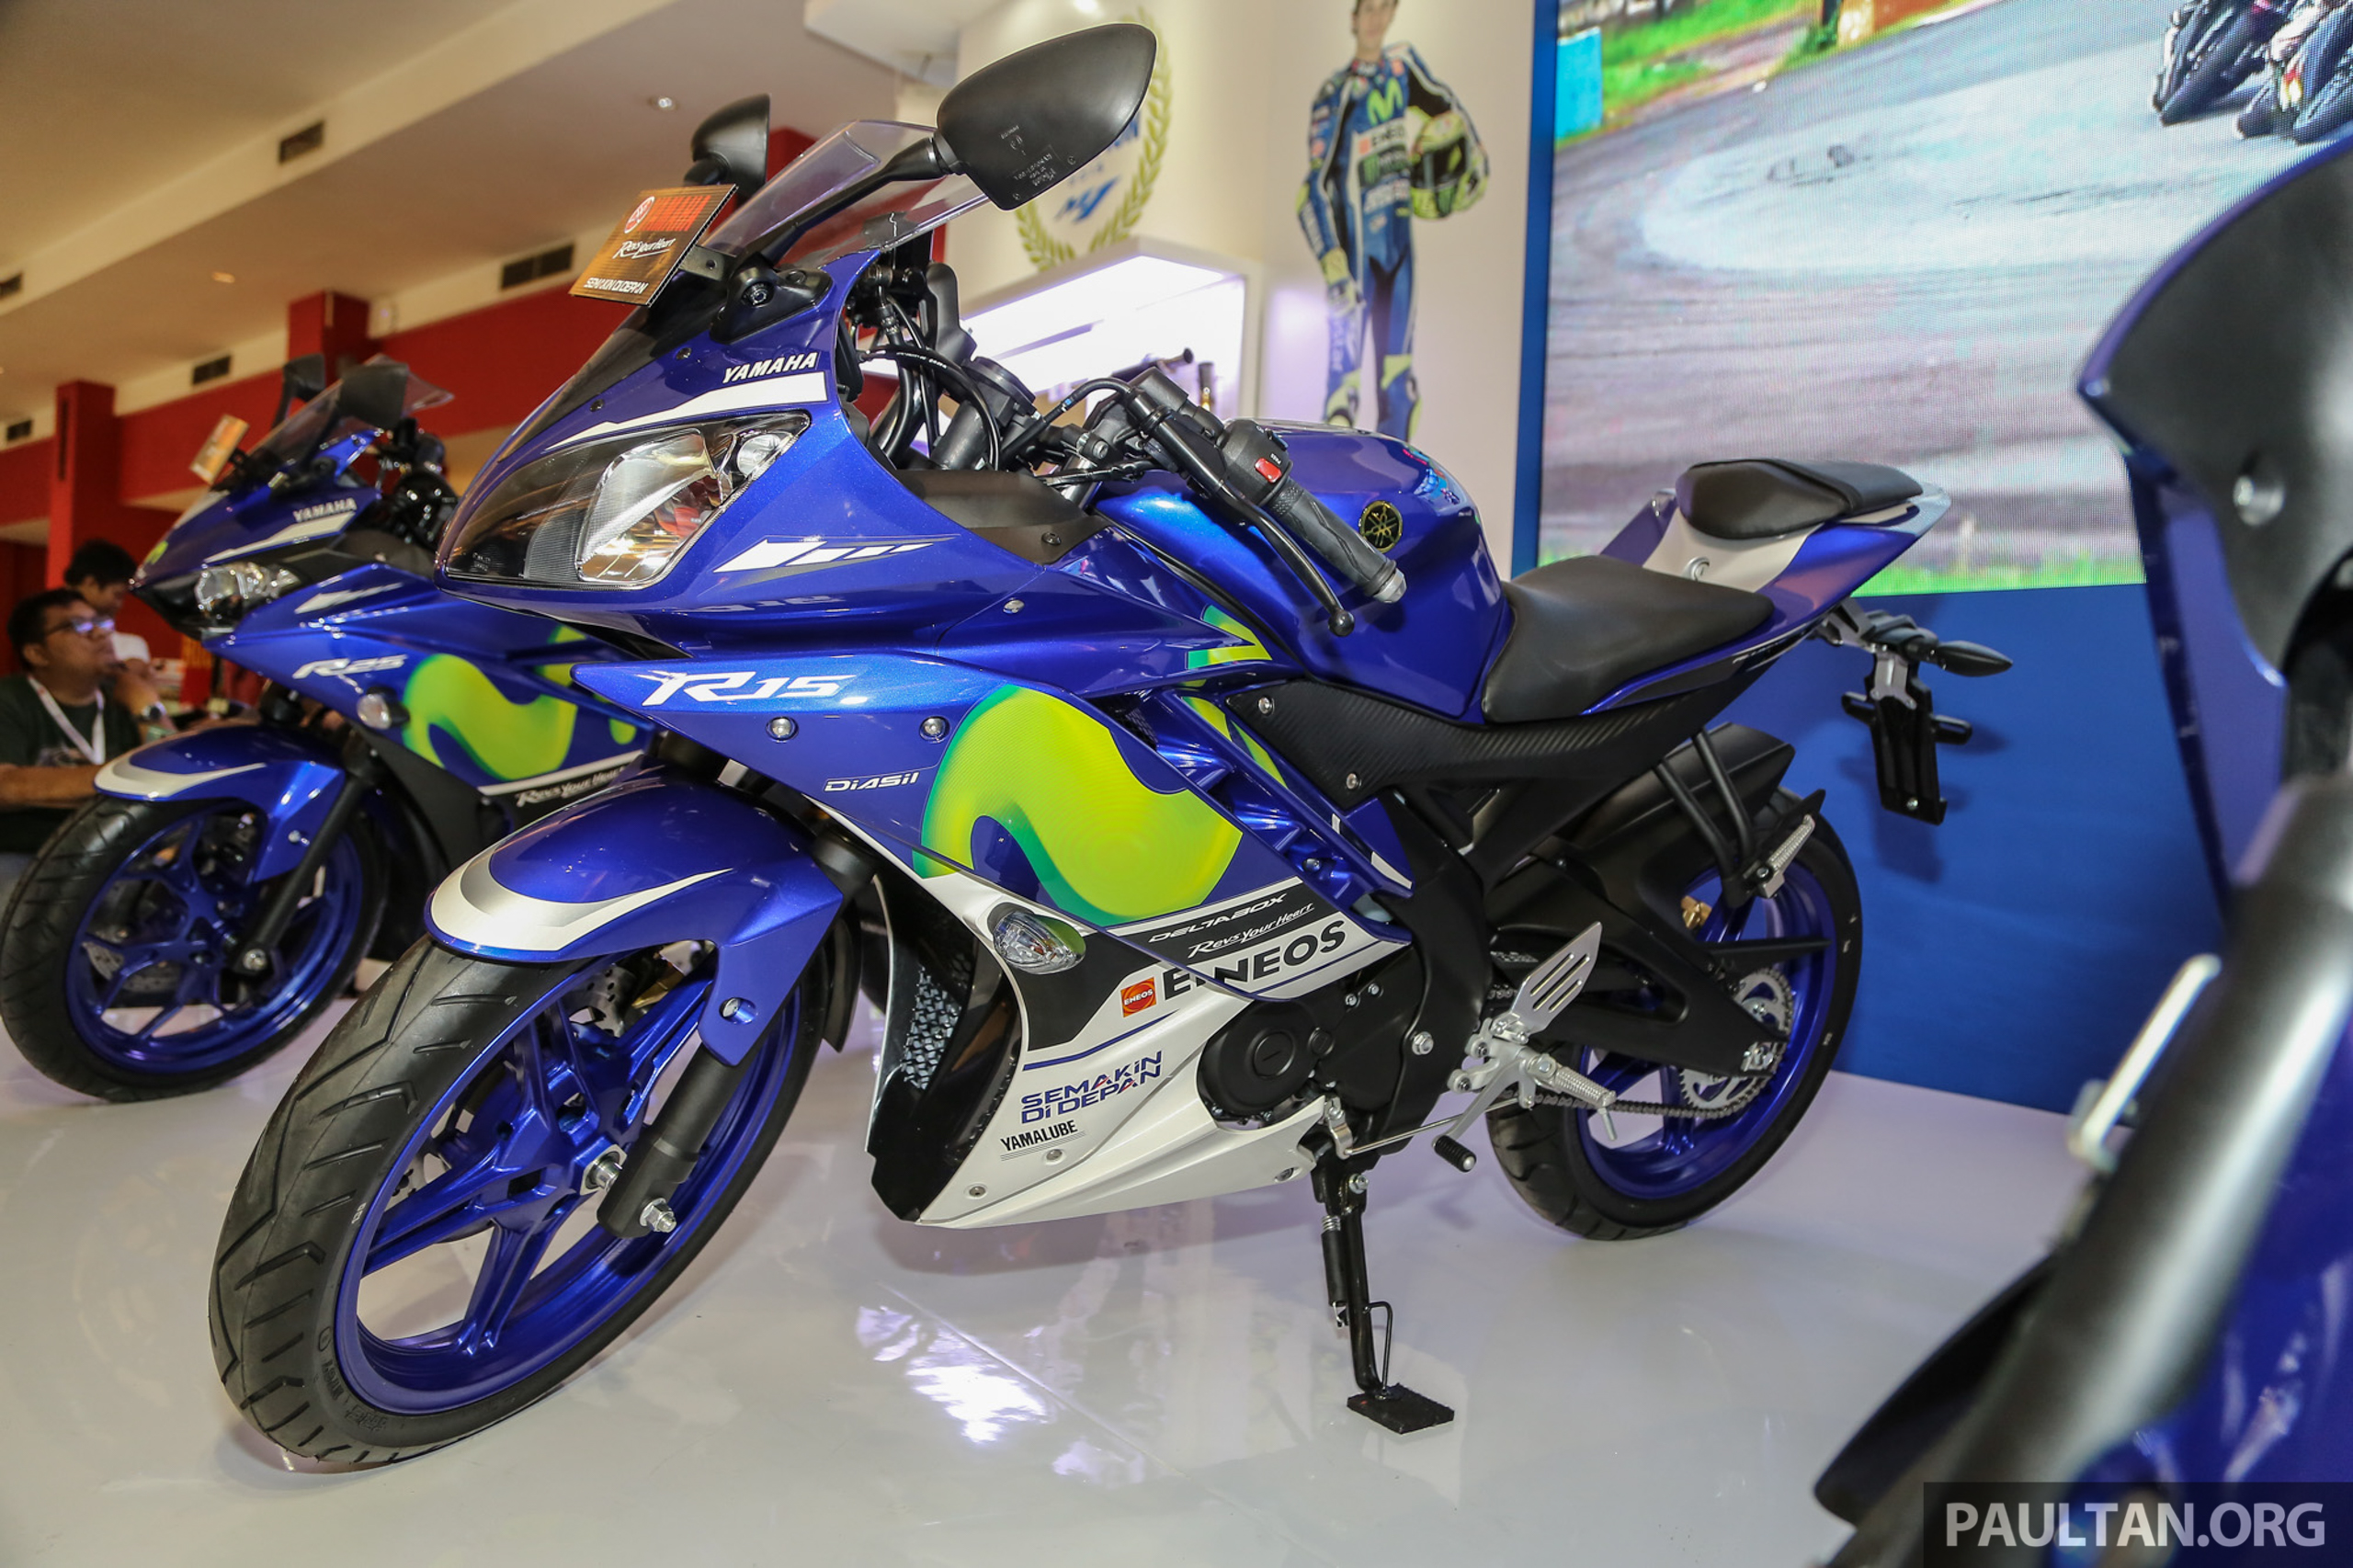 IIMS 2016: Yamaha R15 on display in new colours